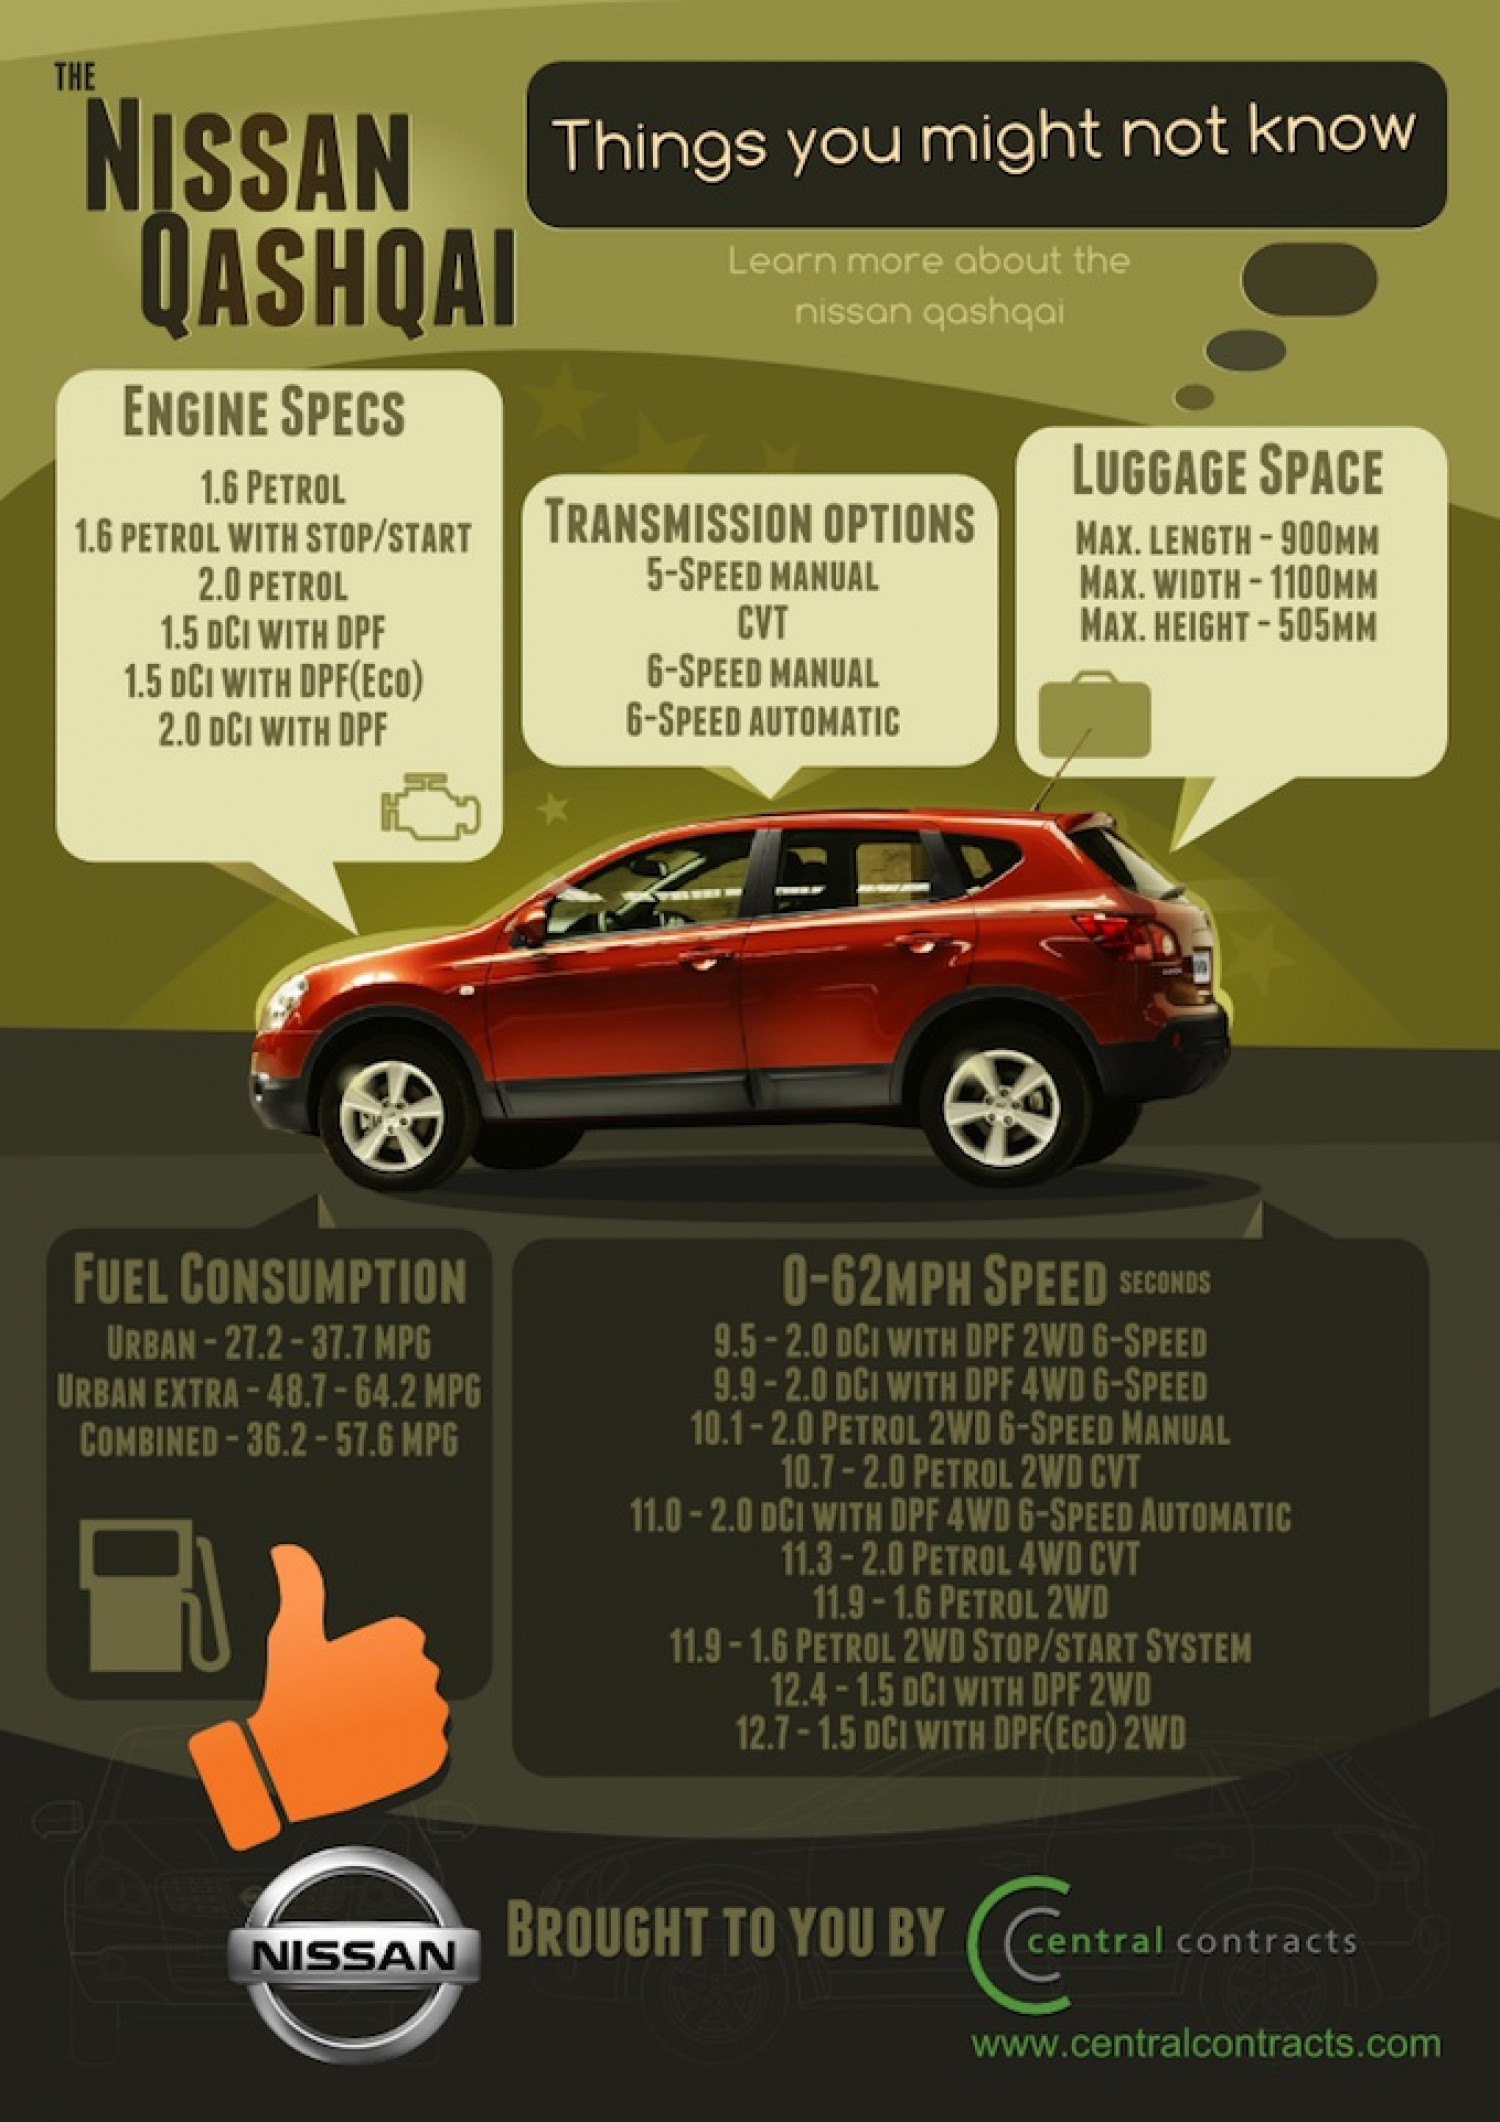 Nissan Qashqai Things you might not know Infographic